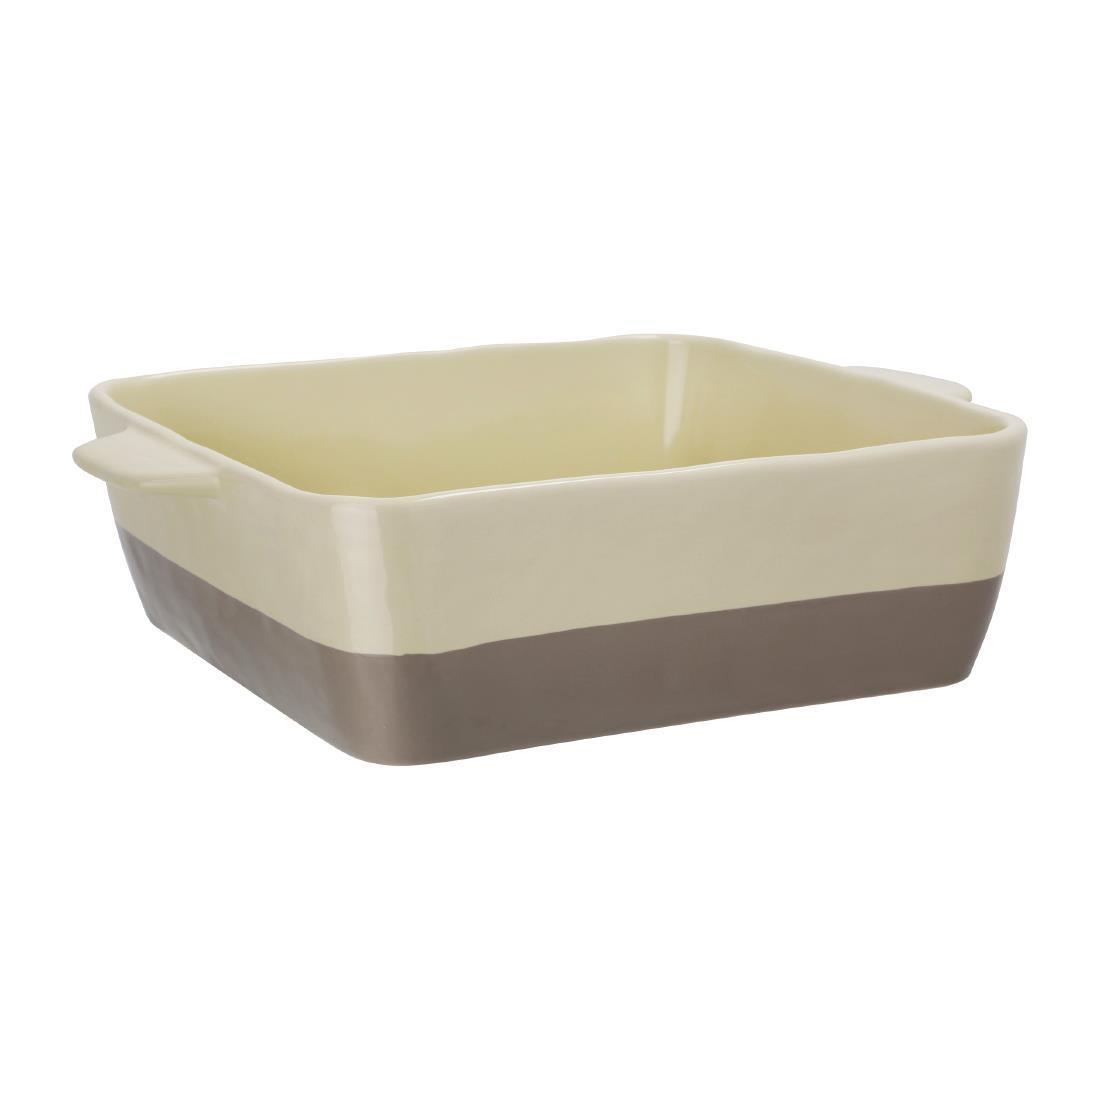 Olympia Cream And Taupe Ceramic Roasting Dish